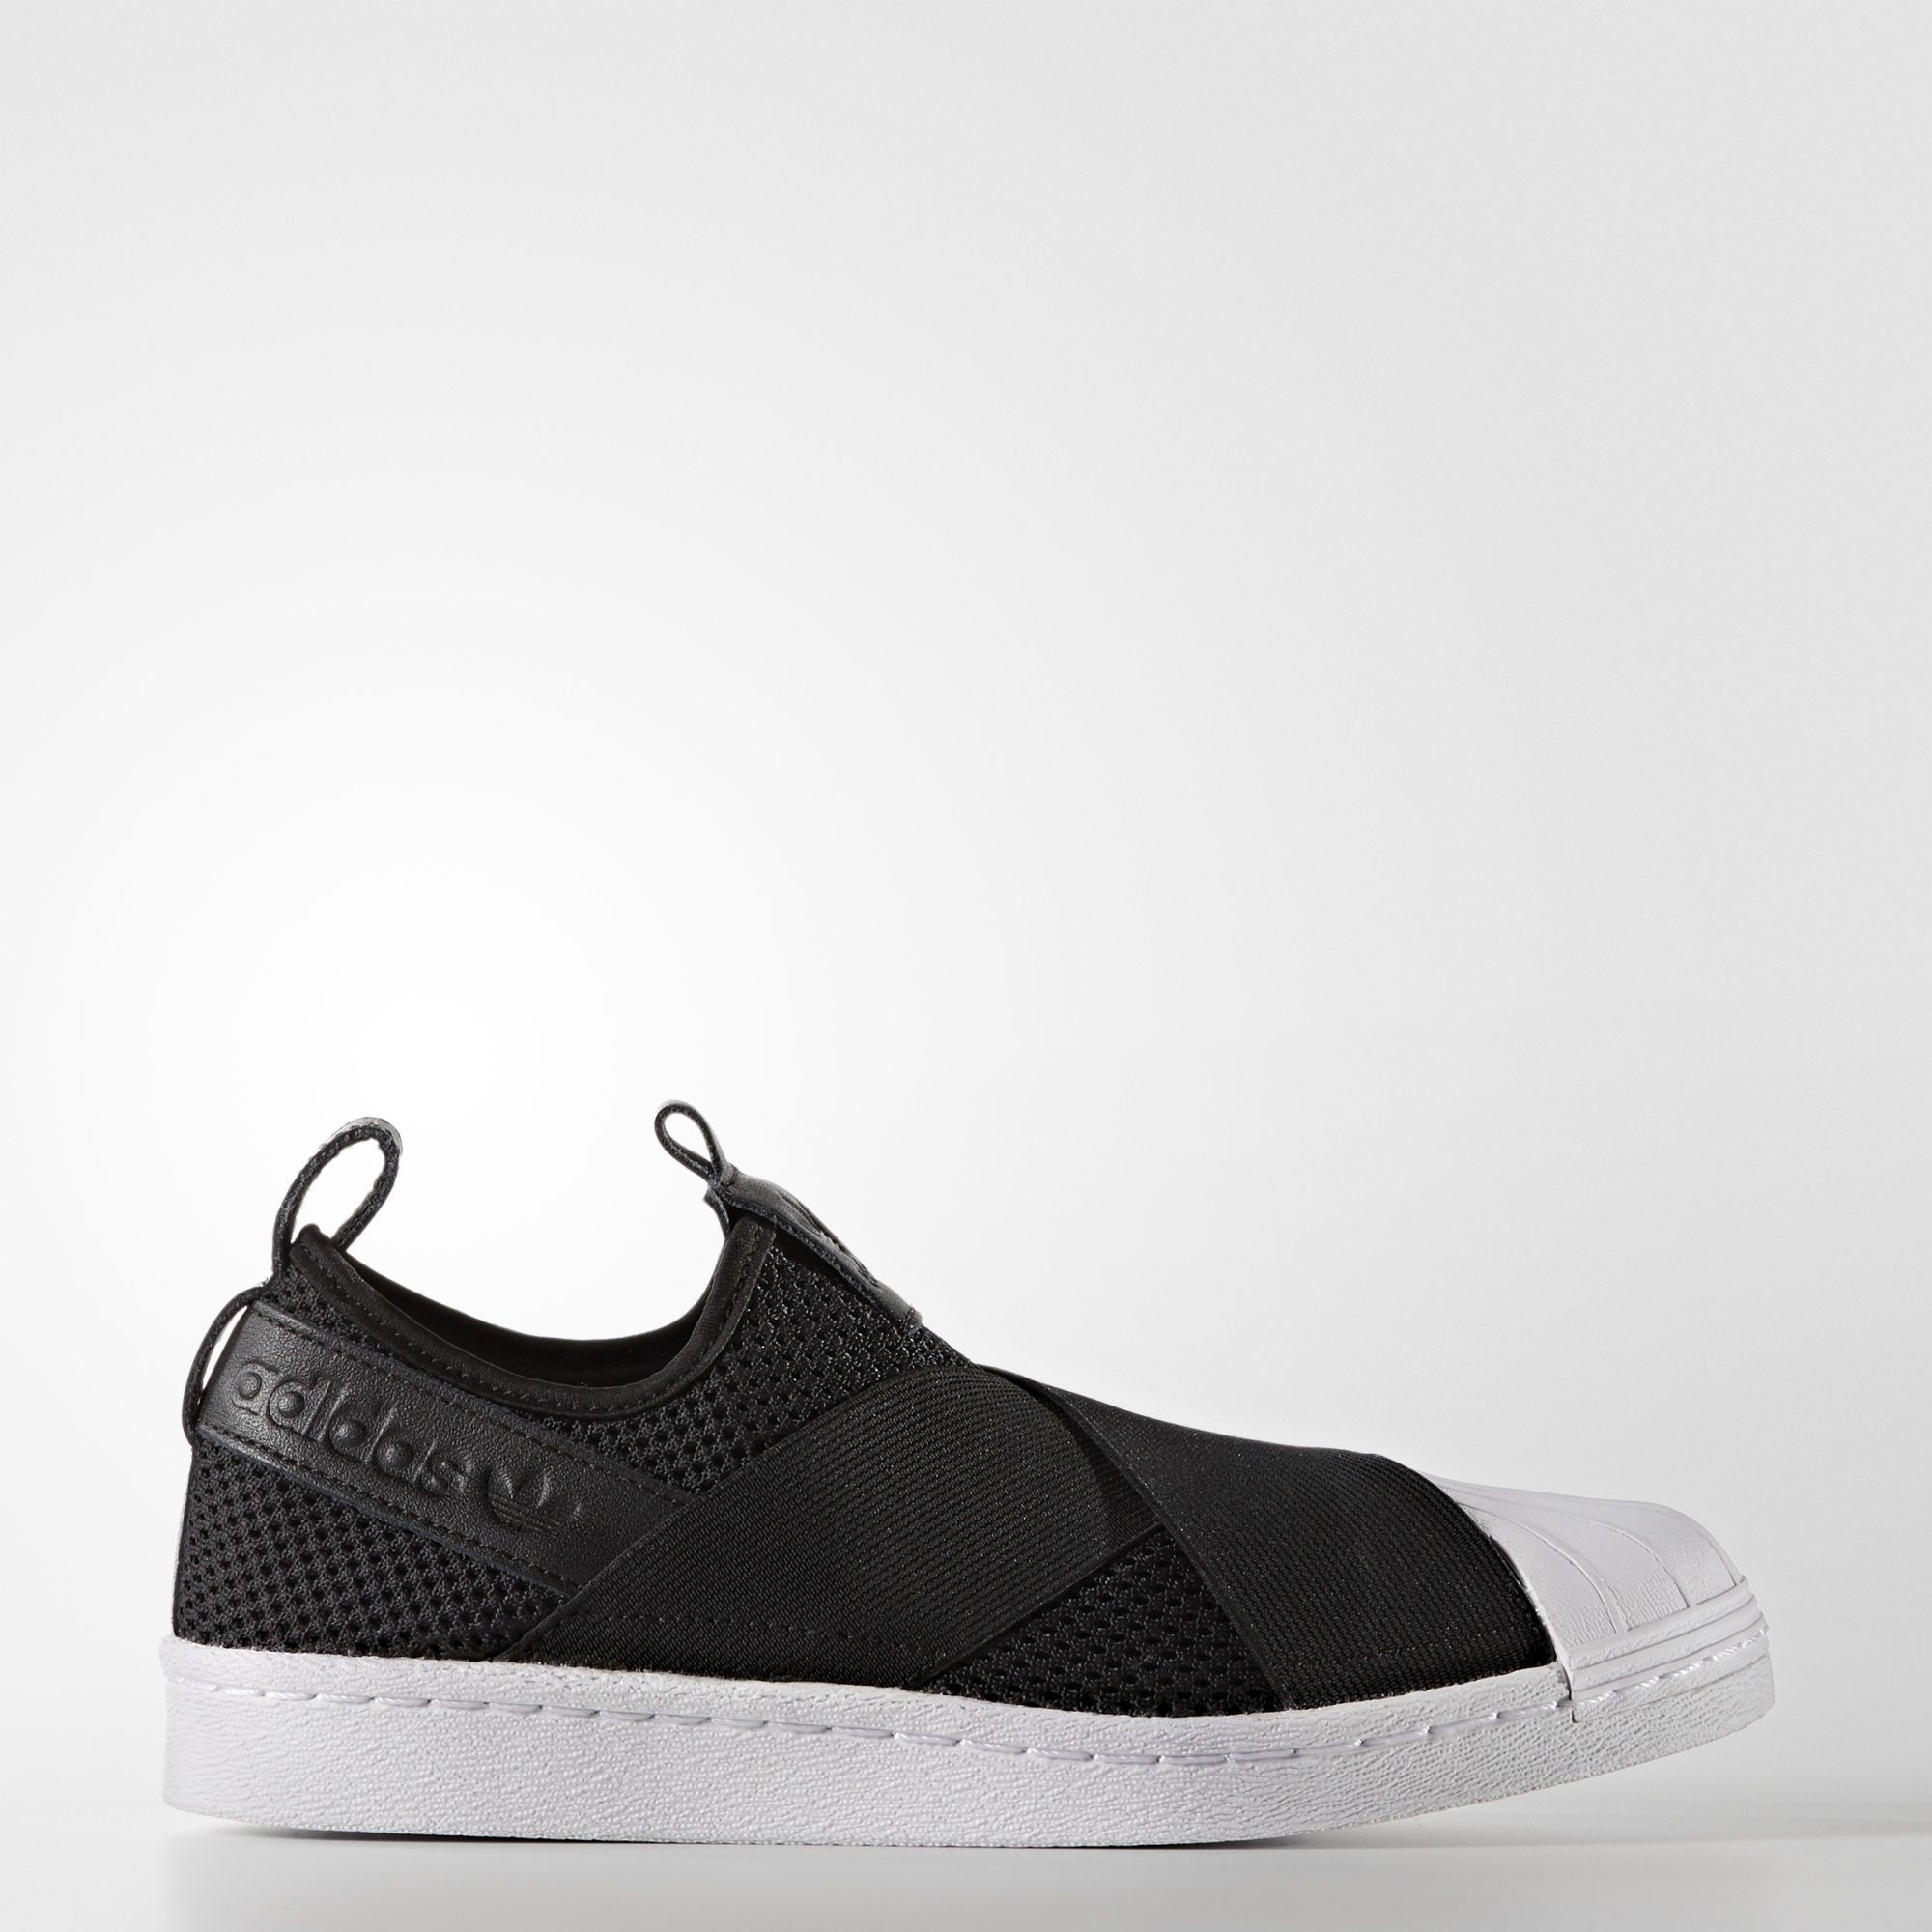 official photos 433ec b2a20 This version of the iconic adidas Superstar sneaker has an easy, slip-on  design. These women s shoes are made with a knit upper plus premium suede  overlays.